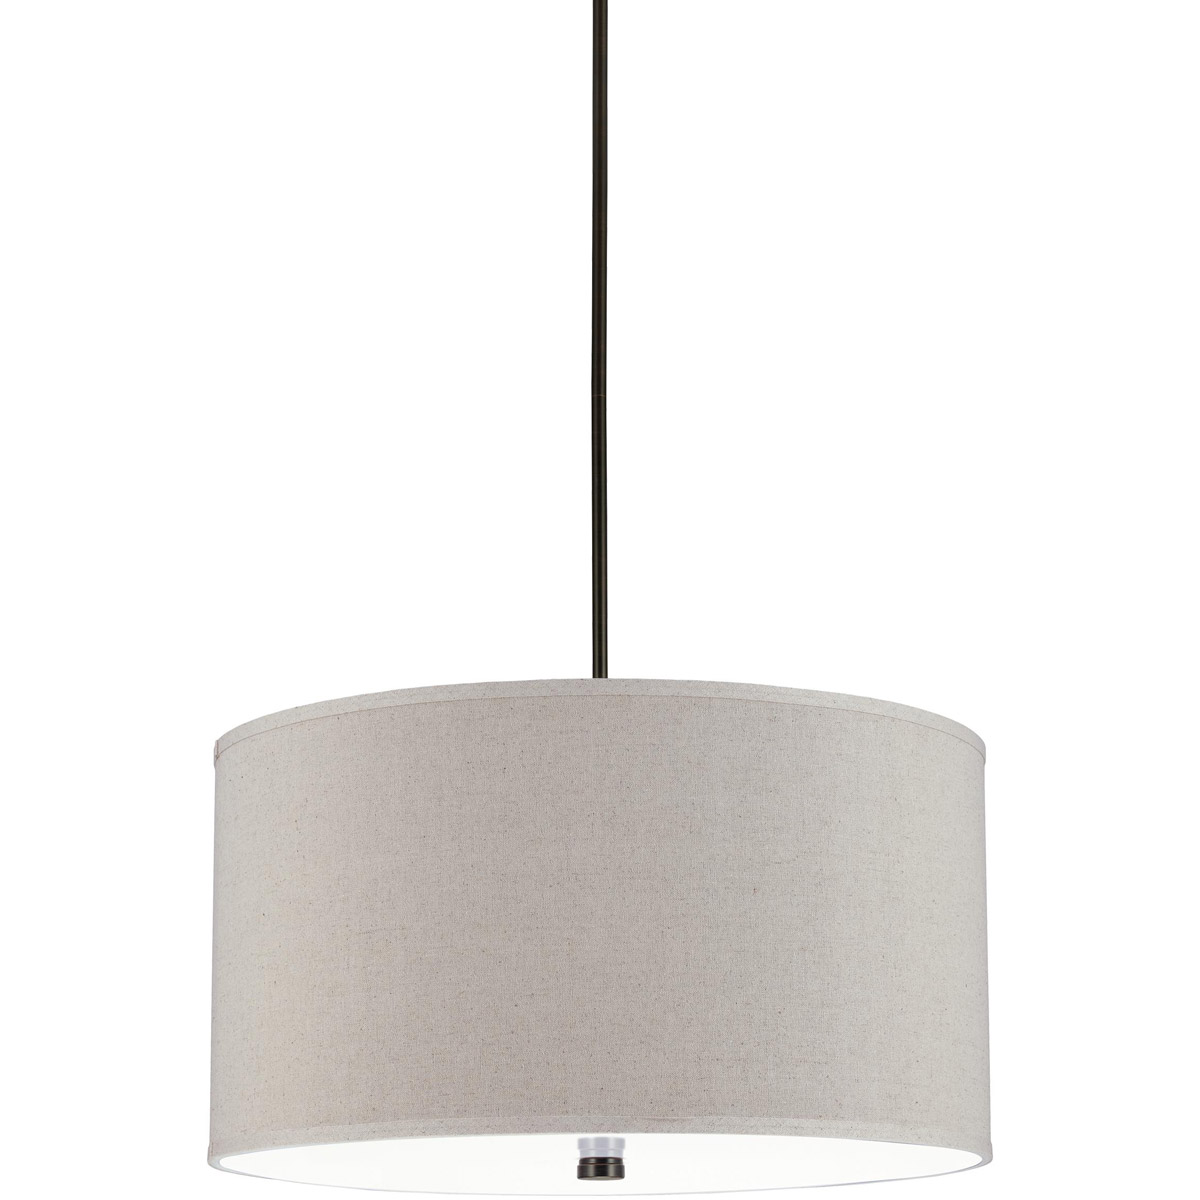 Sea Gull 65262-710 Dayna 4 Light 24 inch Burnt Sienna Shade Pendant Ceiling Light in Linen Fabric photo